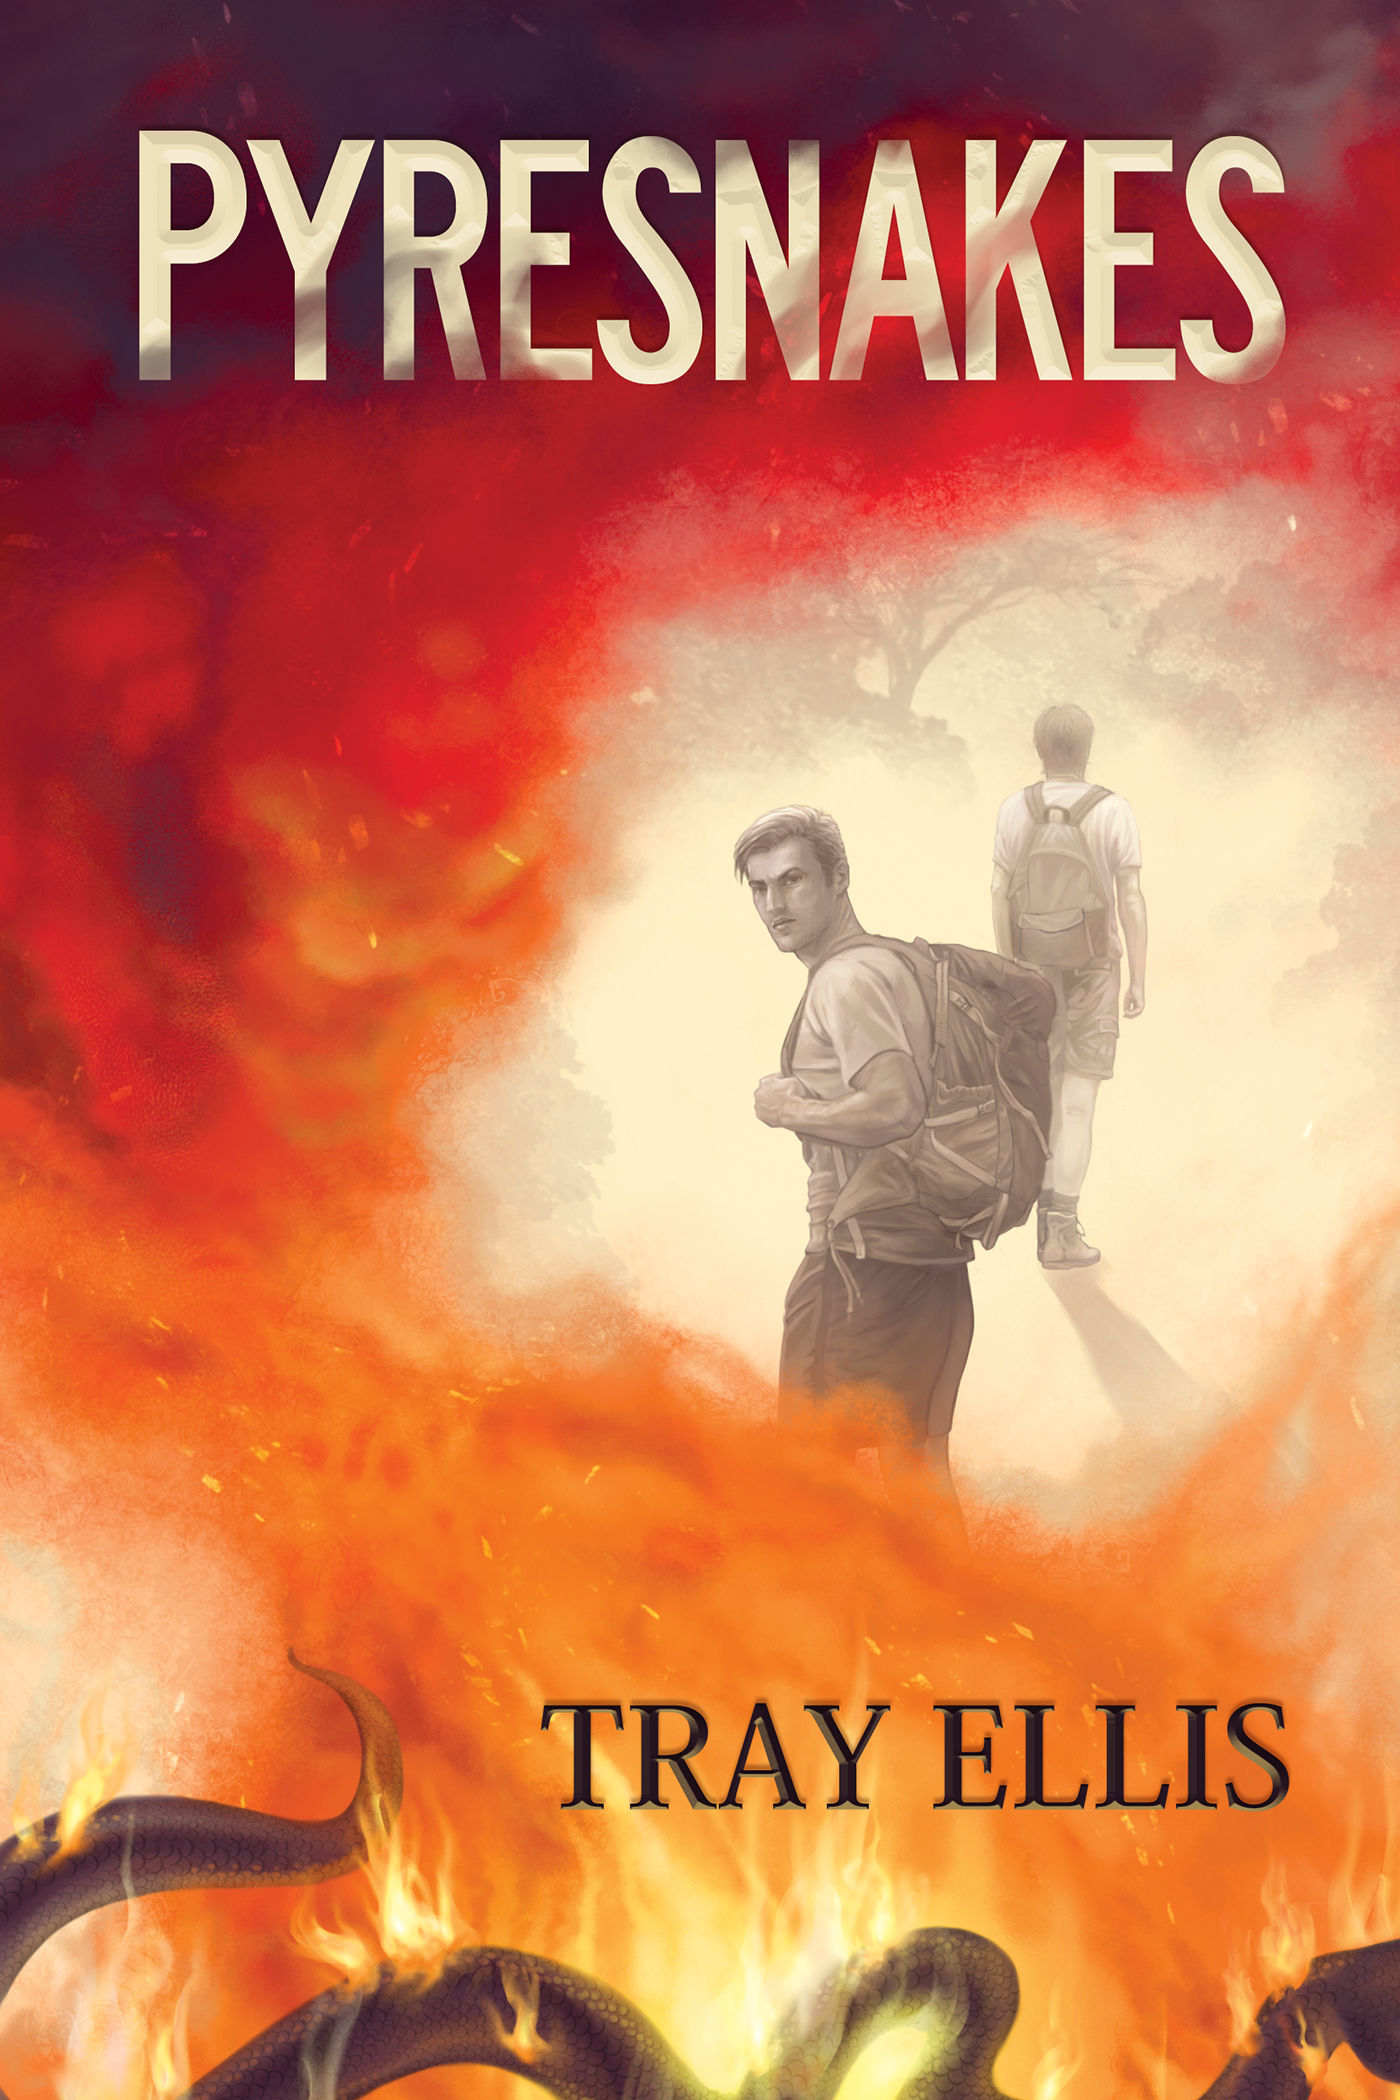 Review: Pyresnakes by Tray Ellis